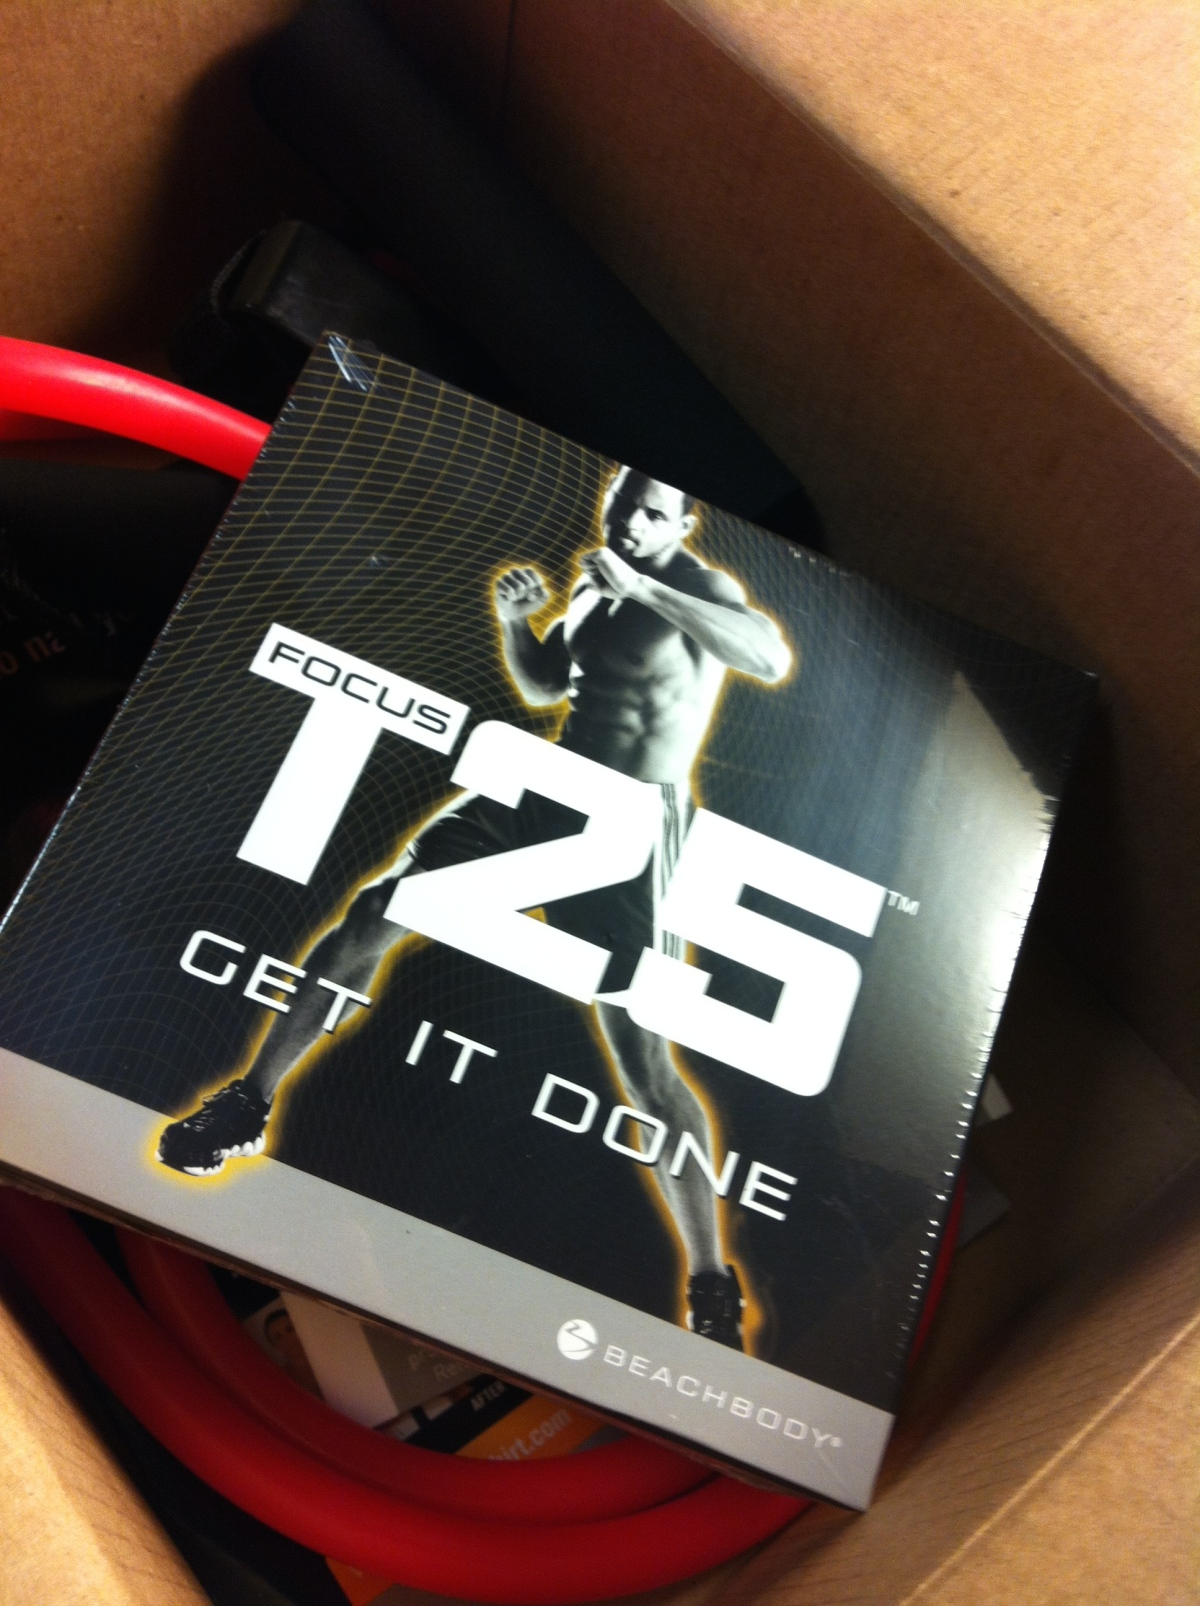 Back to T25